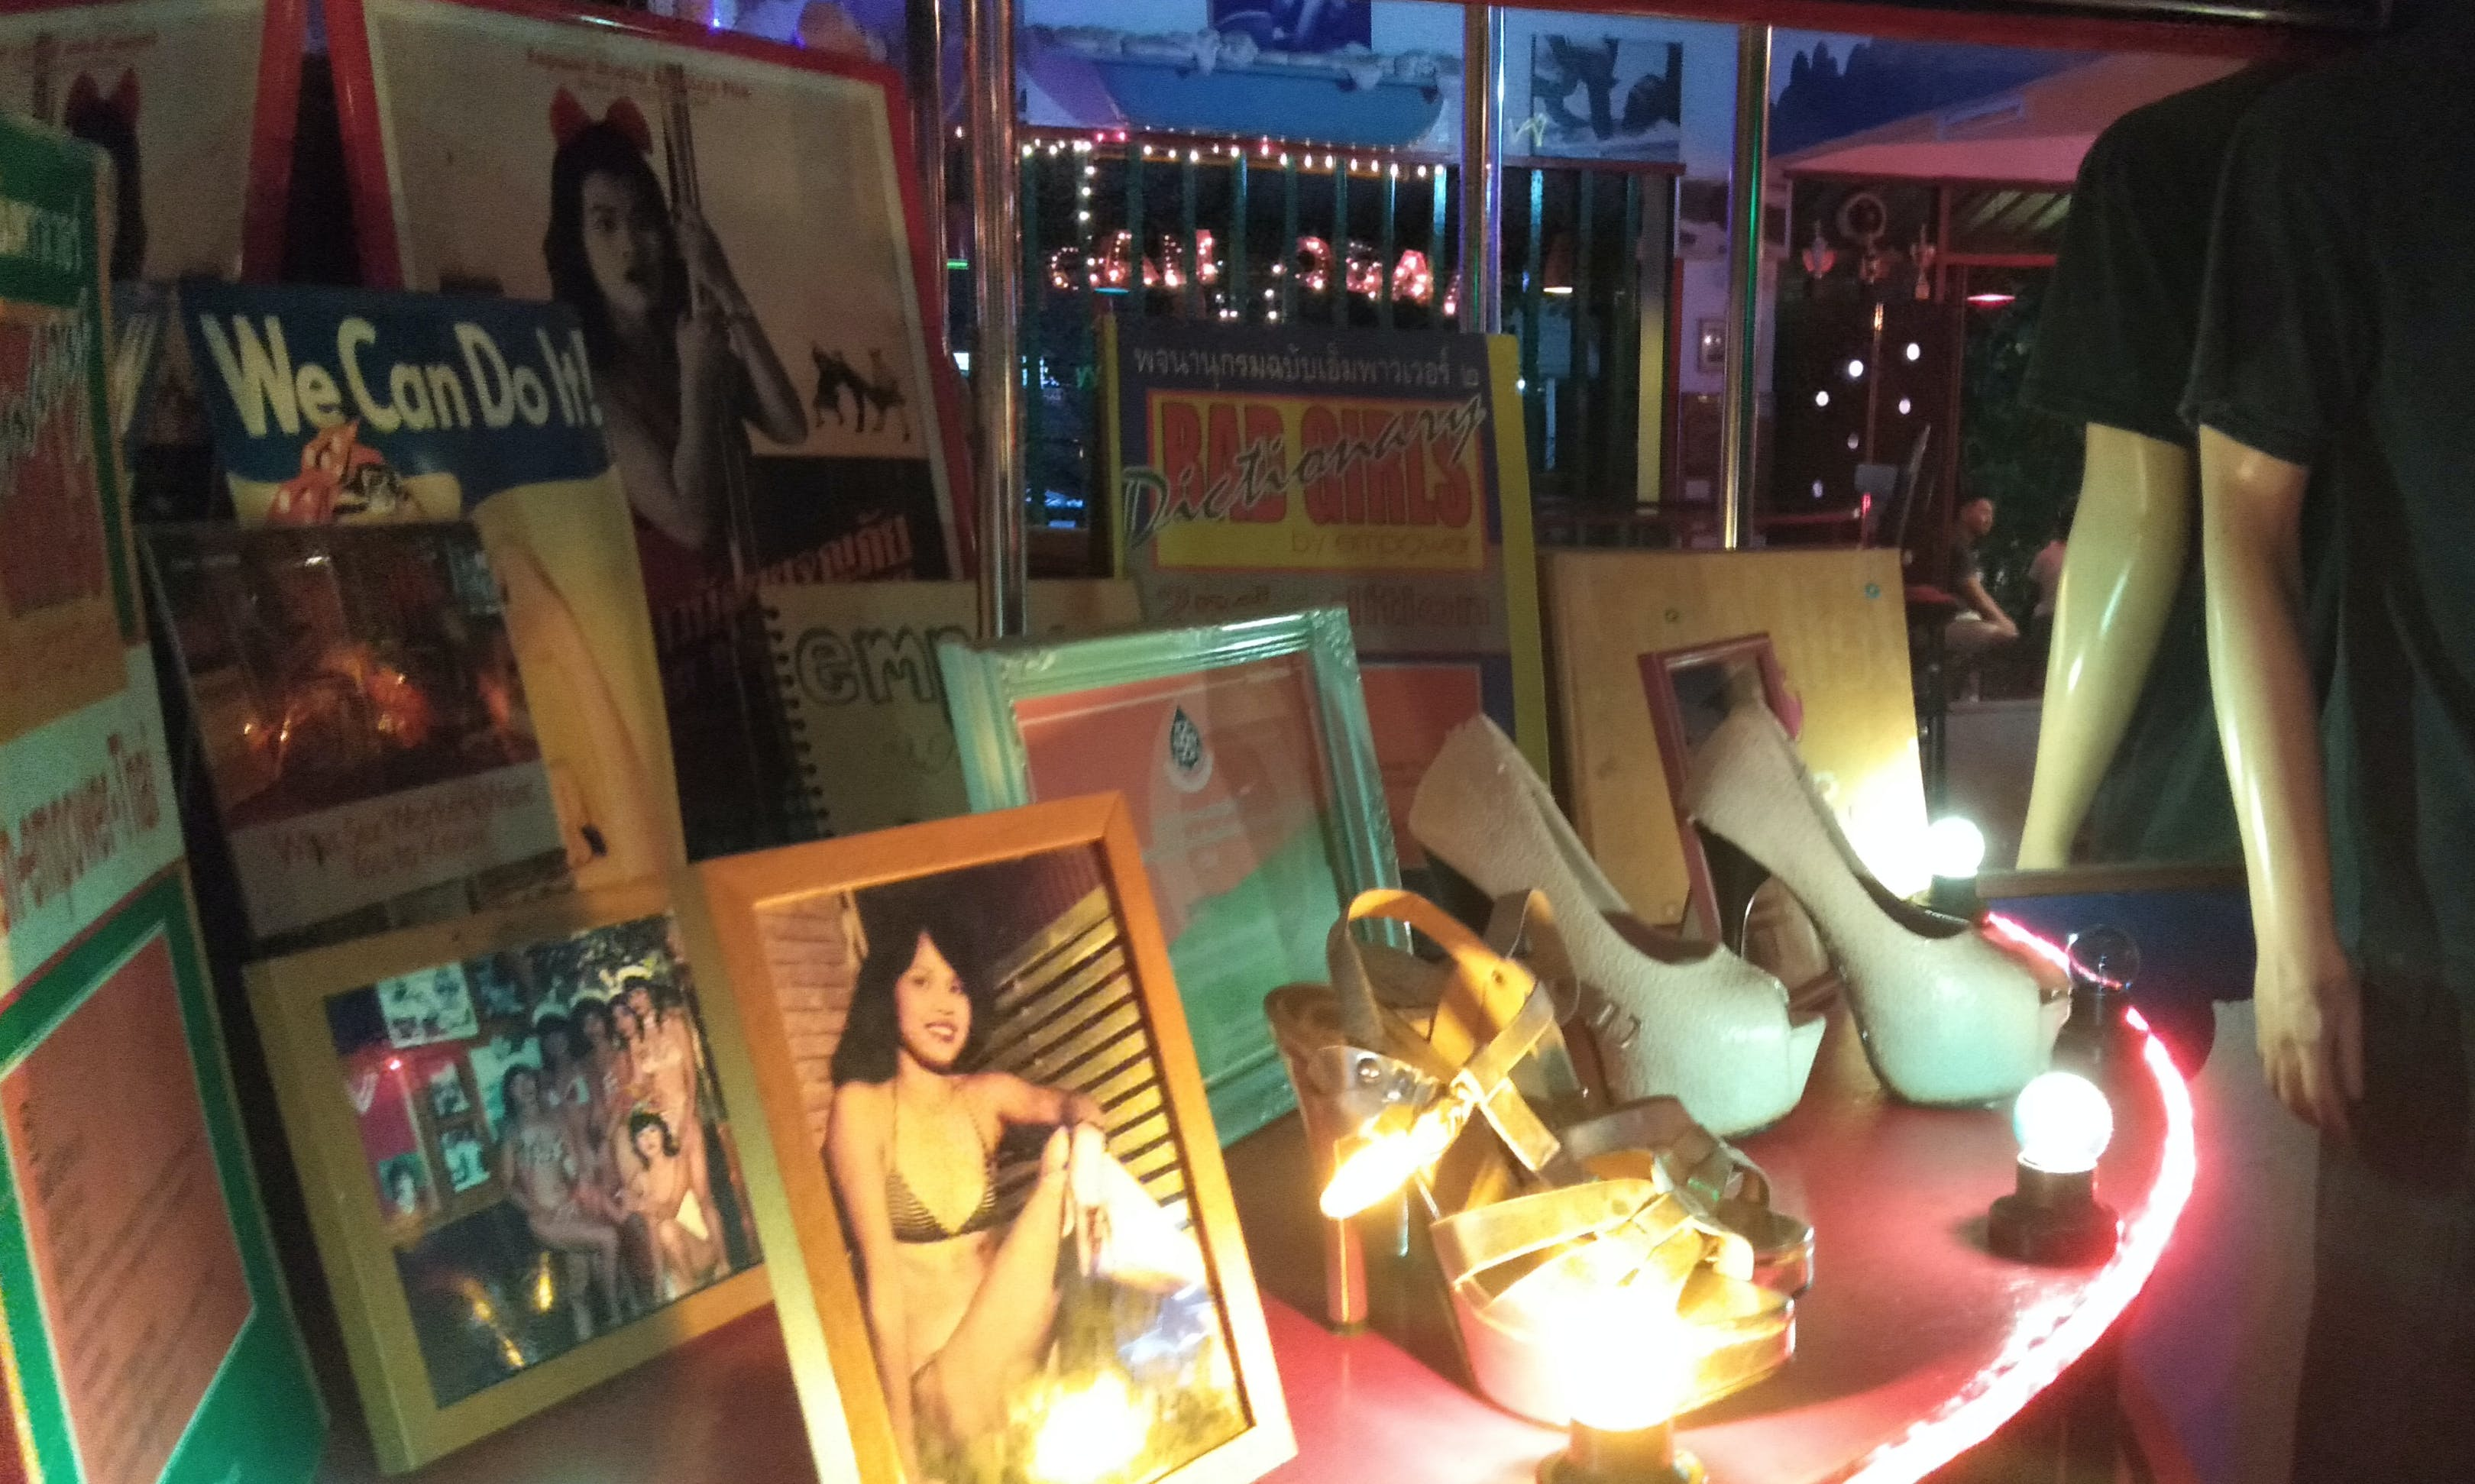 Thailand's 'Can Do' Bar, Run by Sex Workers, Stands for Workers' Rights and Dignity